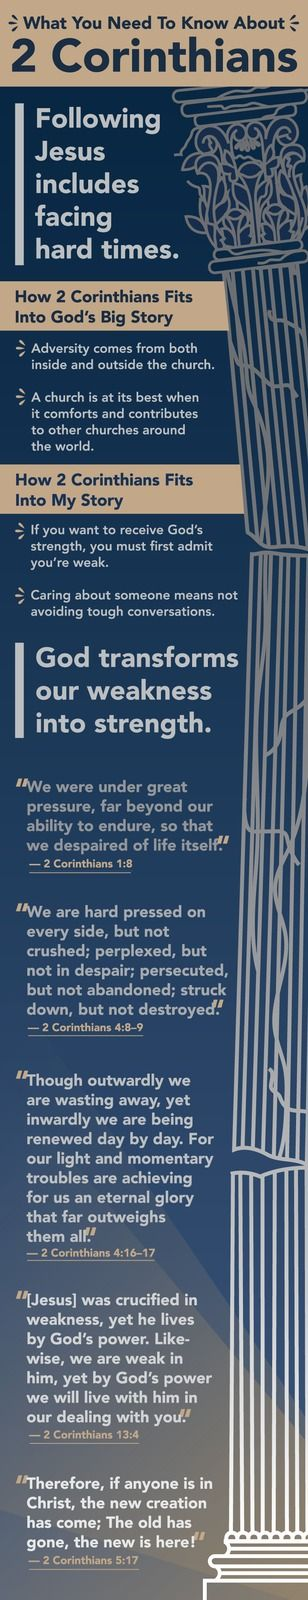 Everything you need to know about 2 Corinthians | Articles | NewSpring Church